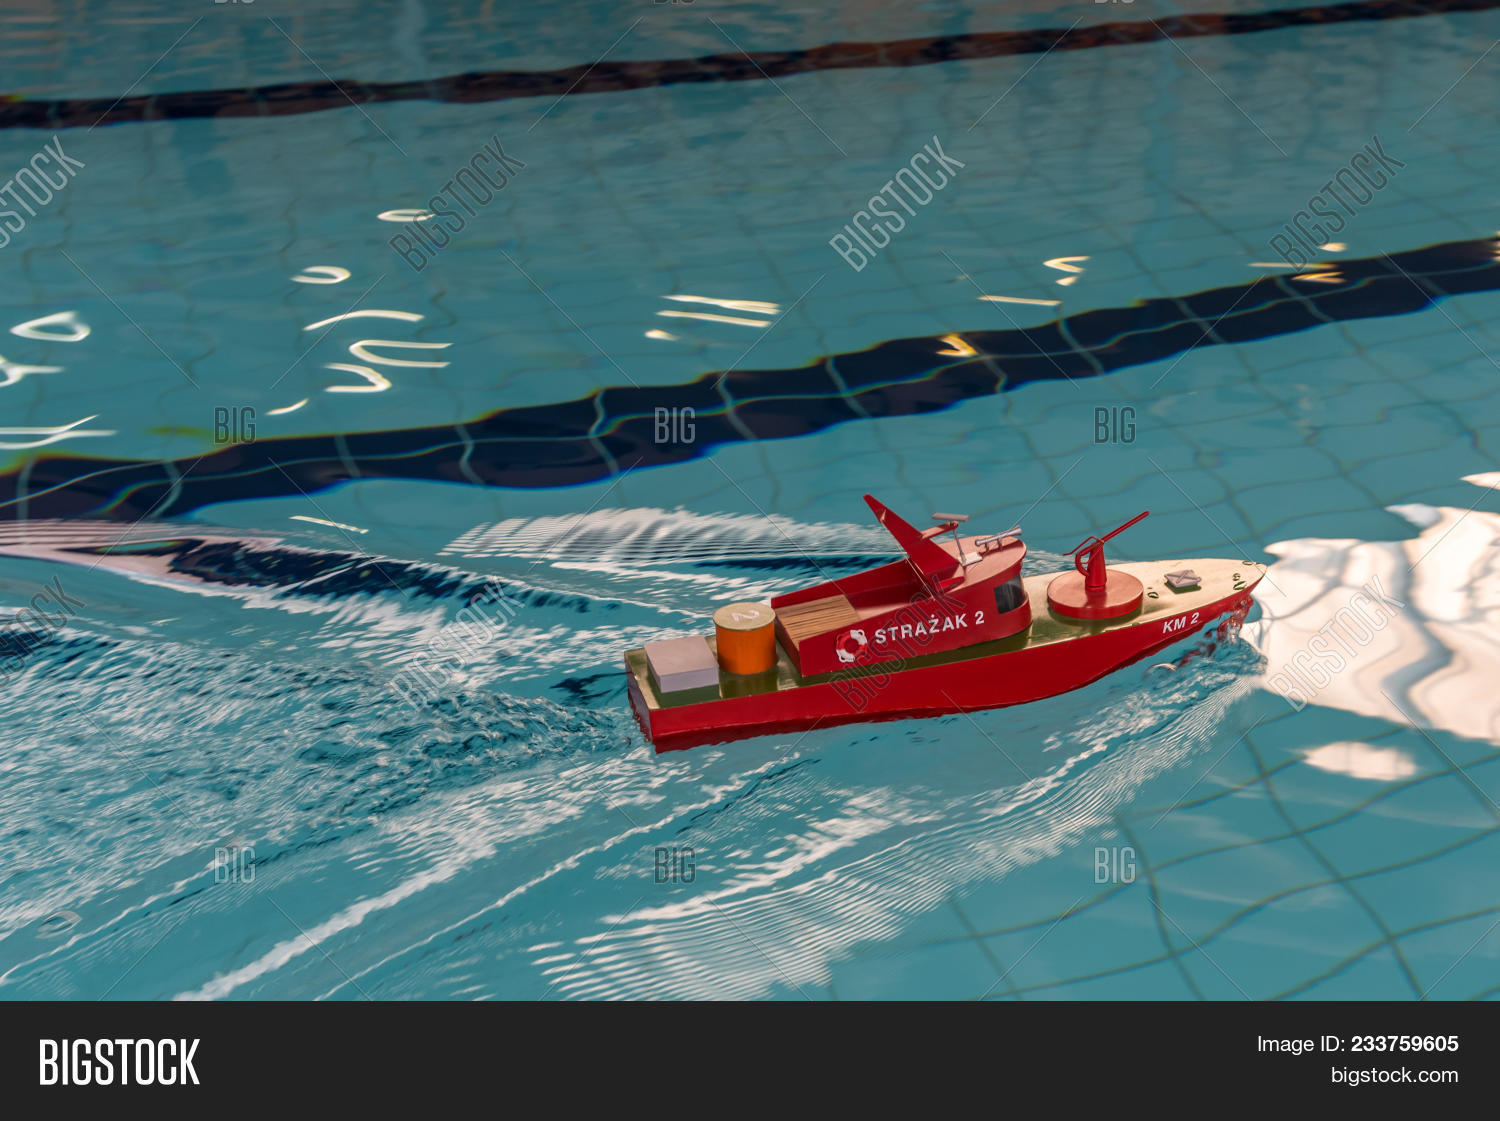 Rc Scale Model Ship Image & Photo (Free Trial) | Bigstock